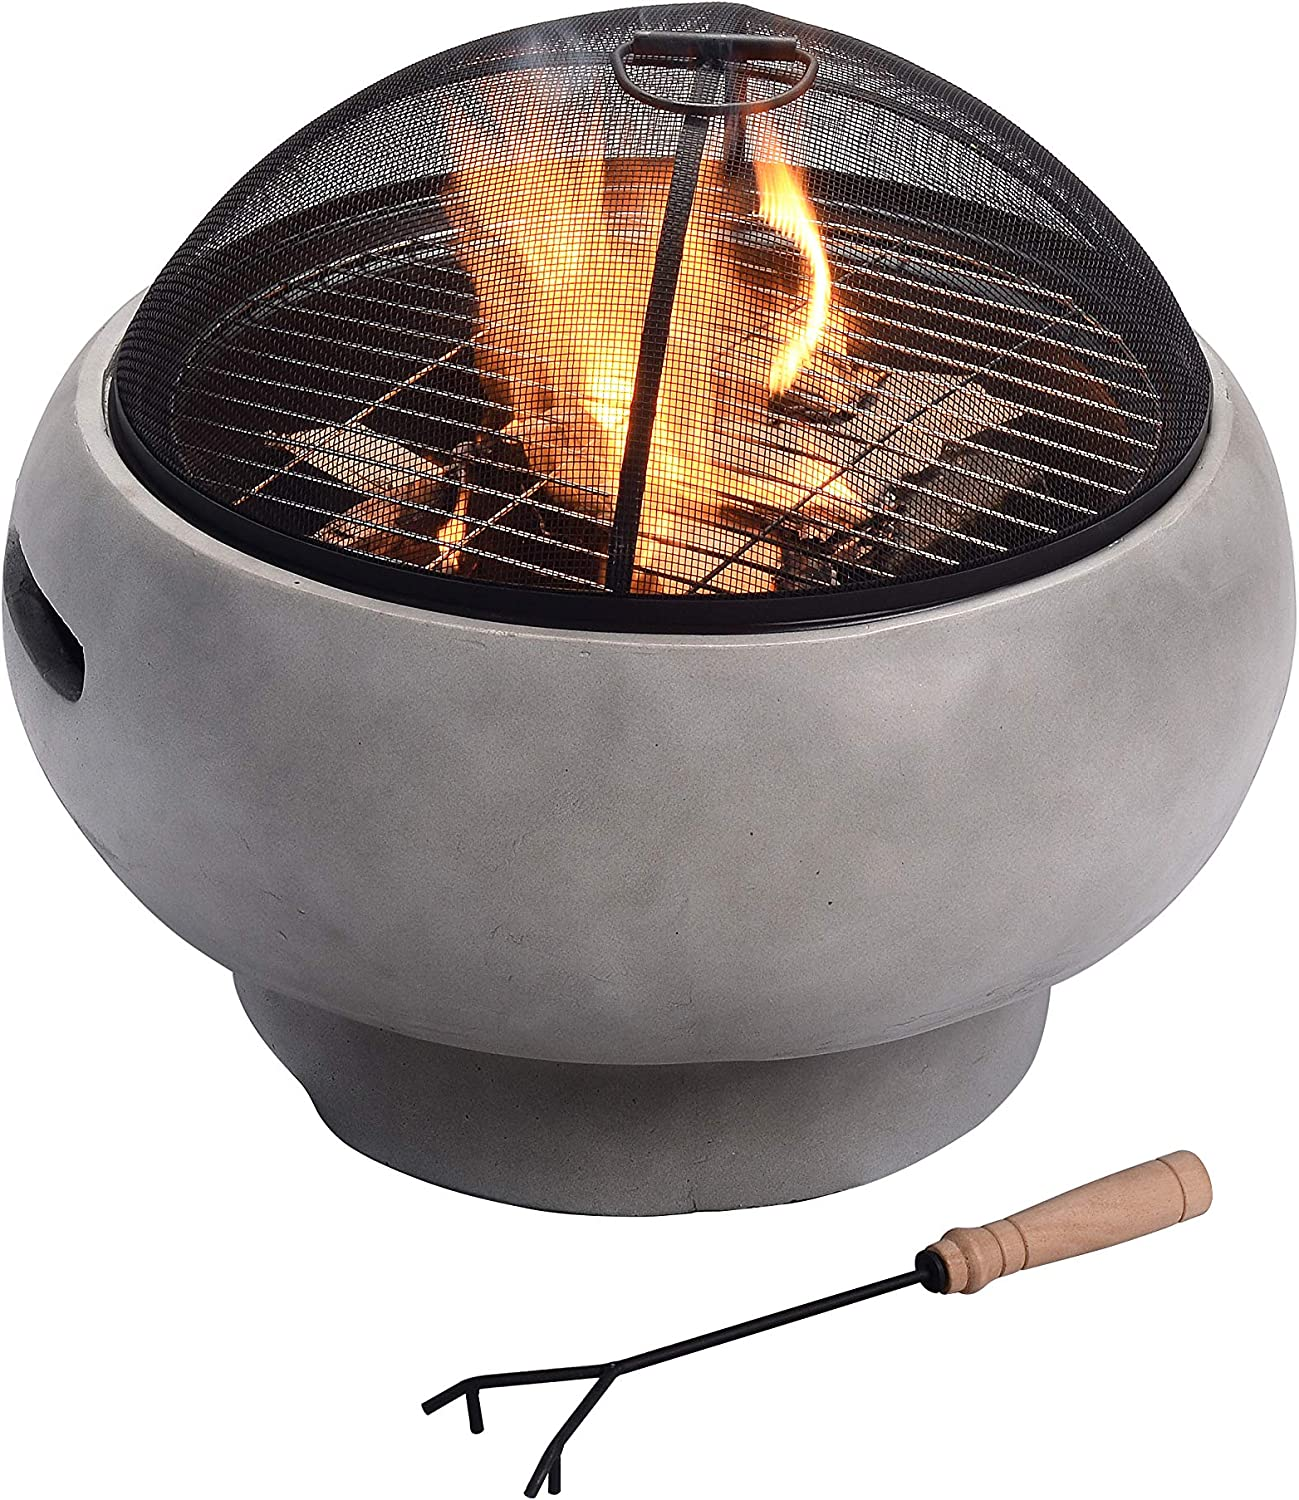 """Peaktop HR17501AB Concrete Round Charcoal and Wood Burning Fire Pit for Outdoor Patio Garden Backyard with Spark Screen, Fireplace Poker, Grate, and BBQ Grill, 22"""", Light Gray"""